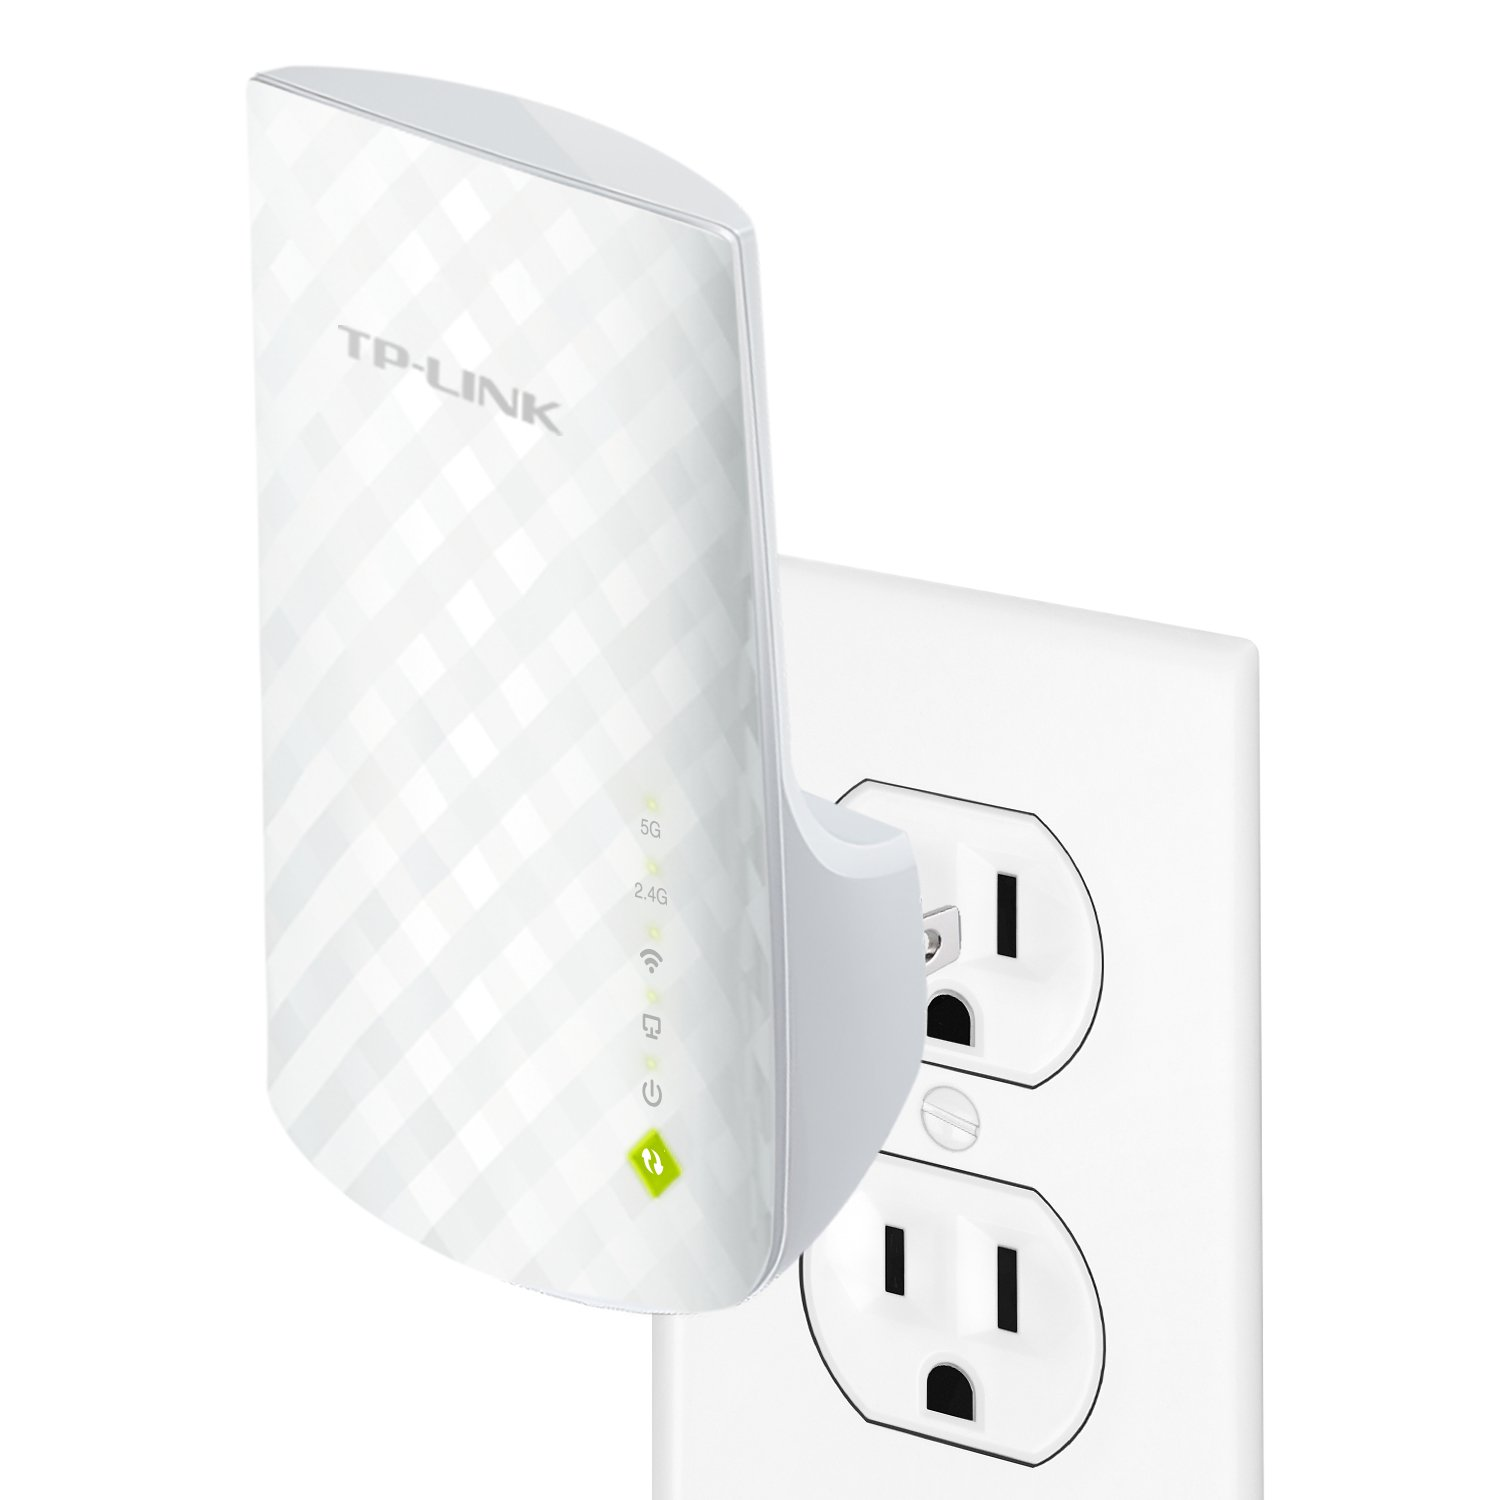 TP-LINK RE200 AC750 Universal Wireless Dual Band Range Extender, Wi-Fi Repeater, Wall Plug, Plug and Play, Ethernet Port, Smart Signal Indicator Light